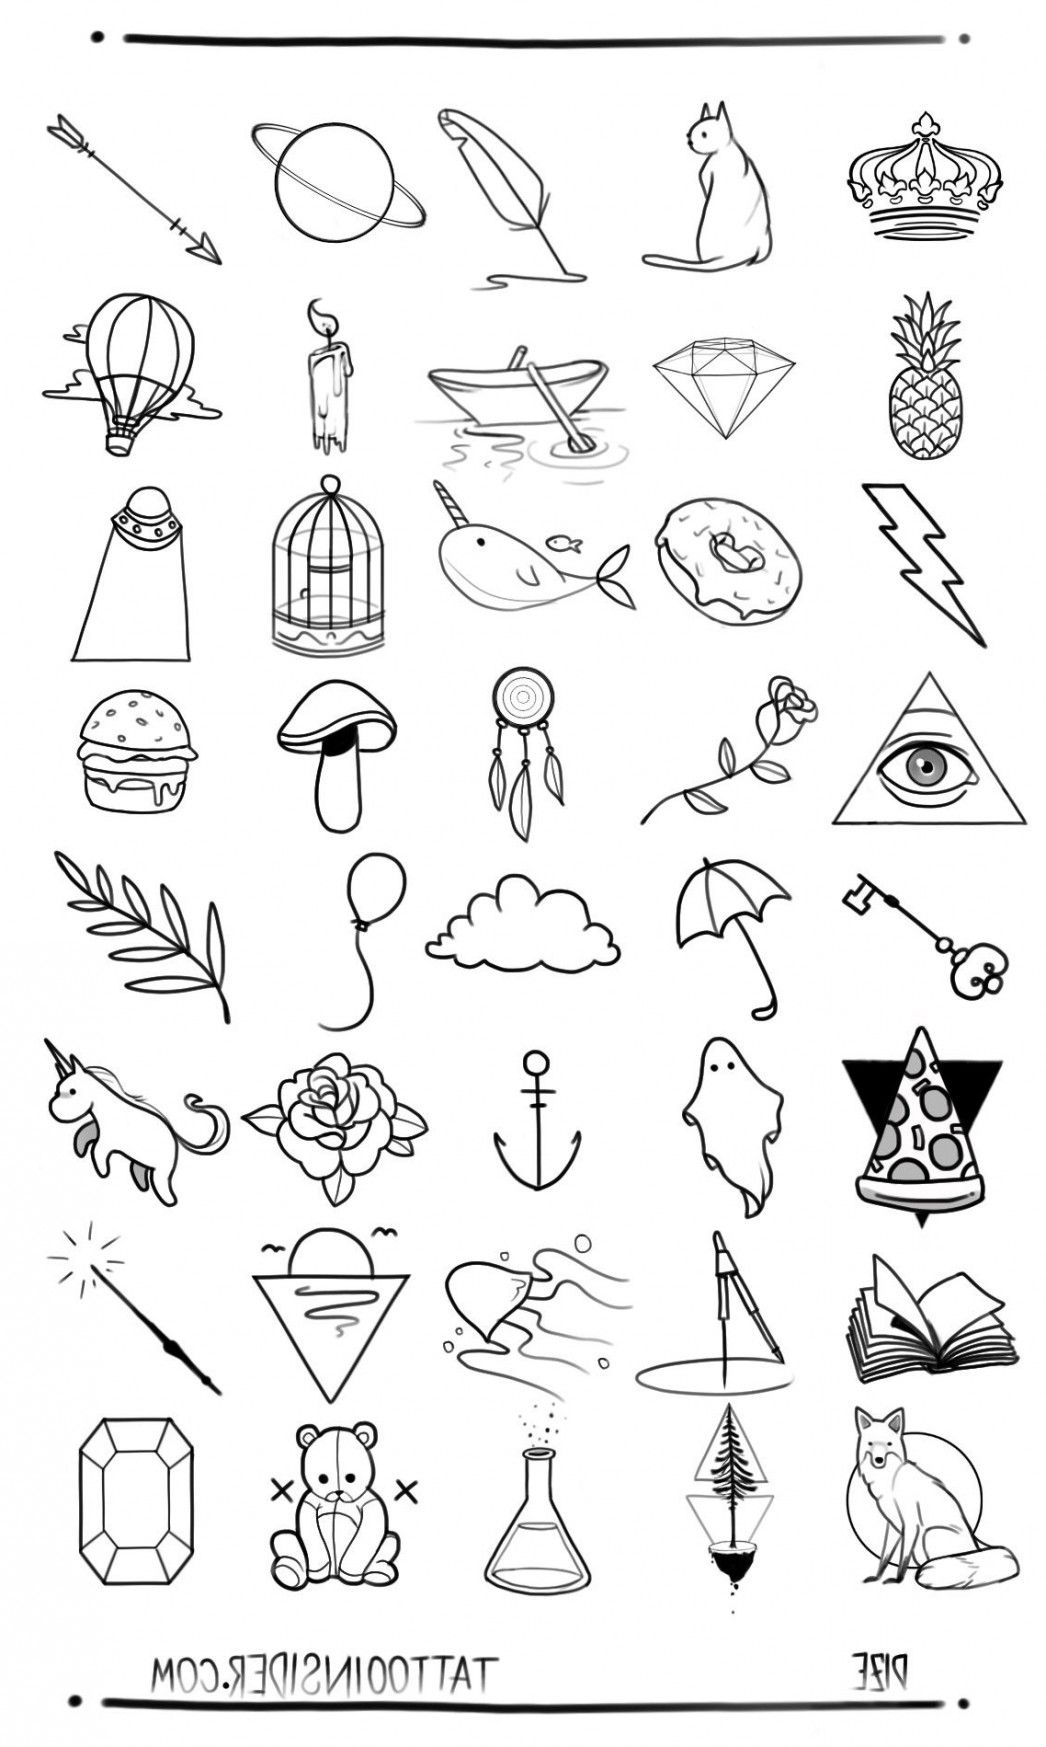 Ten Awesome Things You Can Learn From Little Tattoo Designs Little Tattoo Designs Small Tattoo Designs Small Tattoos Little Tattoos